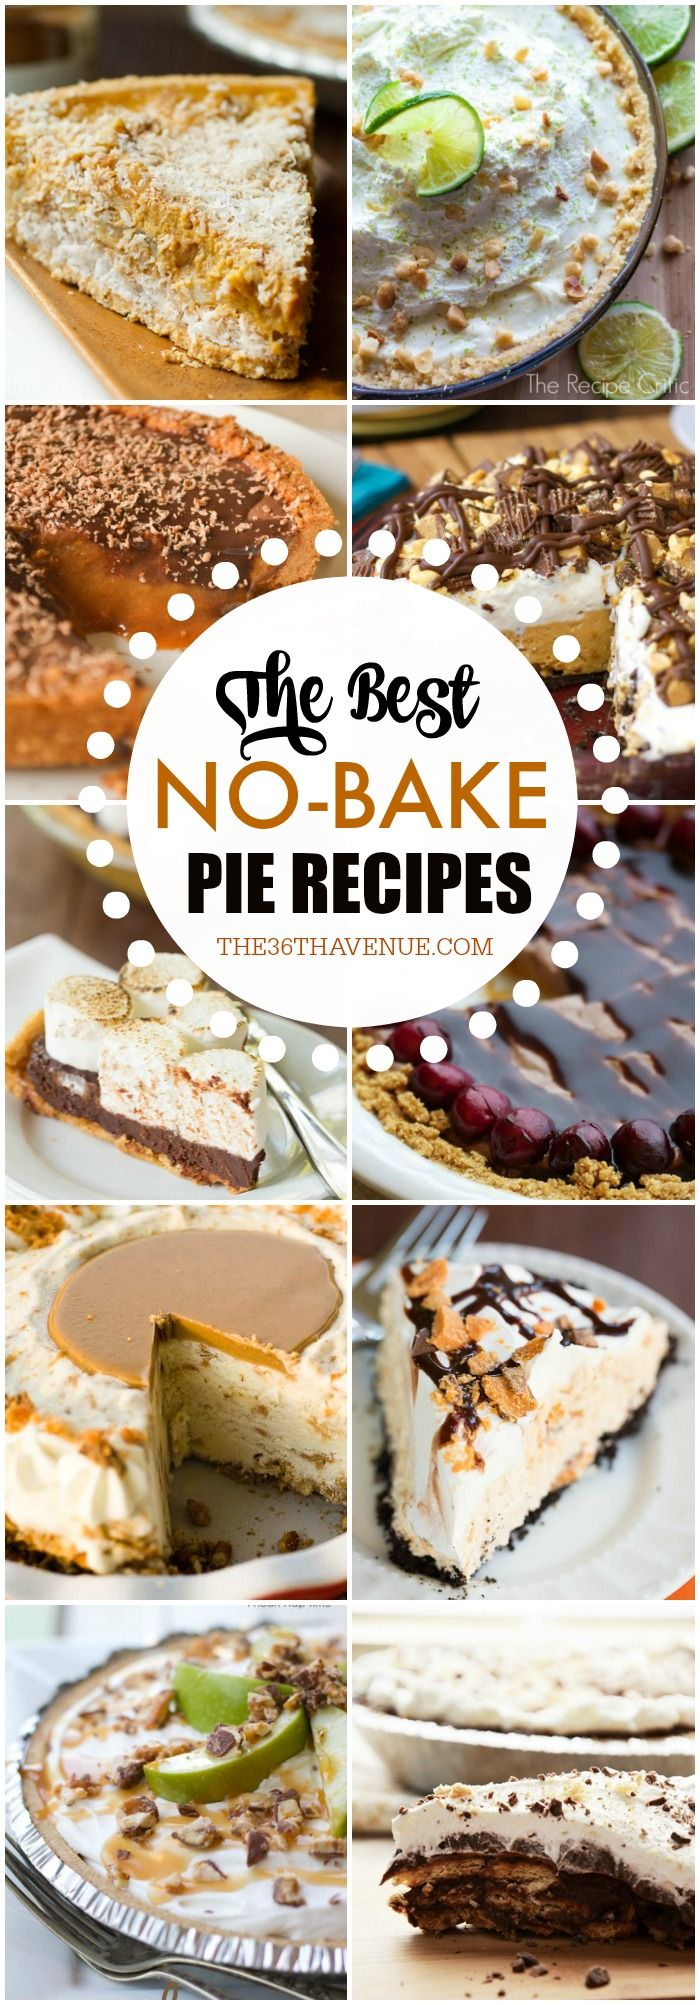 15 Delicious No-Bake Pie Recipes - Fall recipes are the best and these NO BAKE PIE RECIPES are beyond delicious! Make any of these yummy pie recipes for Thanksgiving or for any time you are craving a quick and easy dessert!